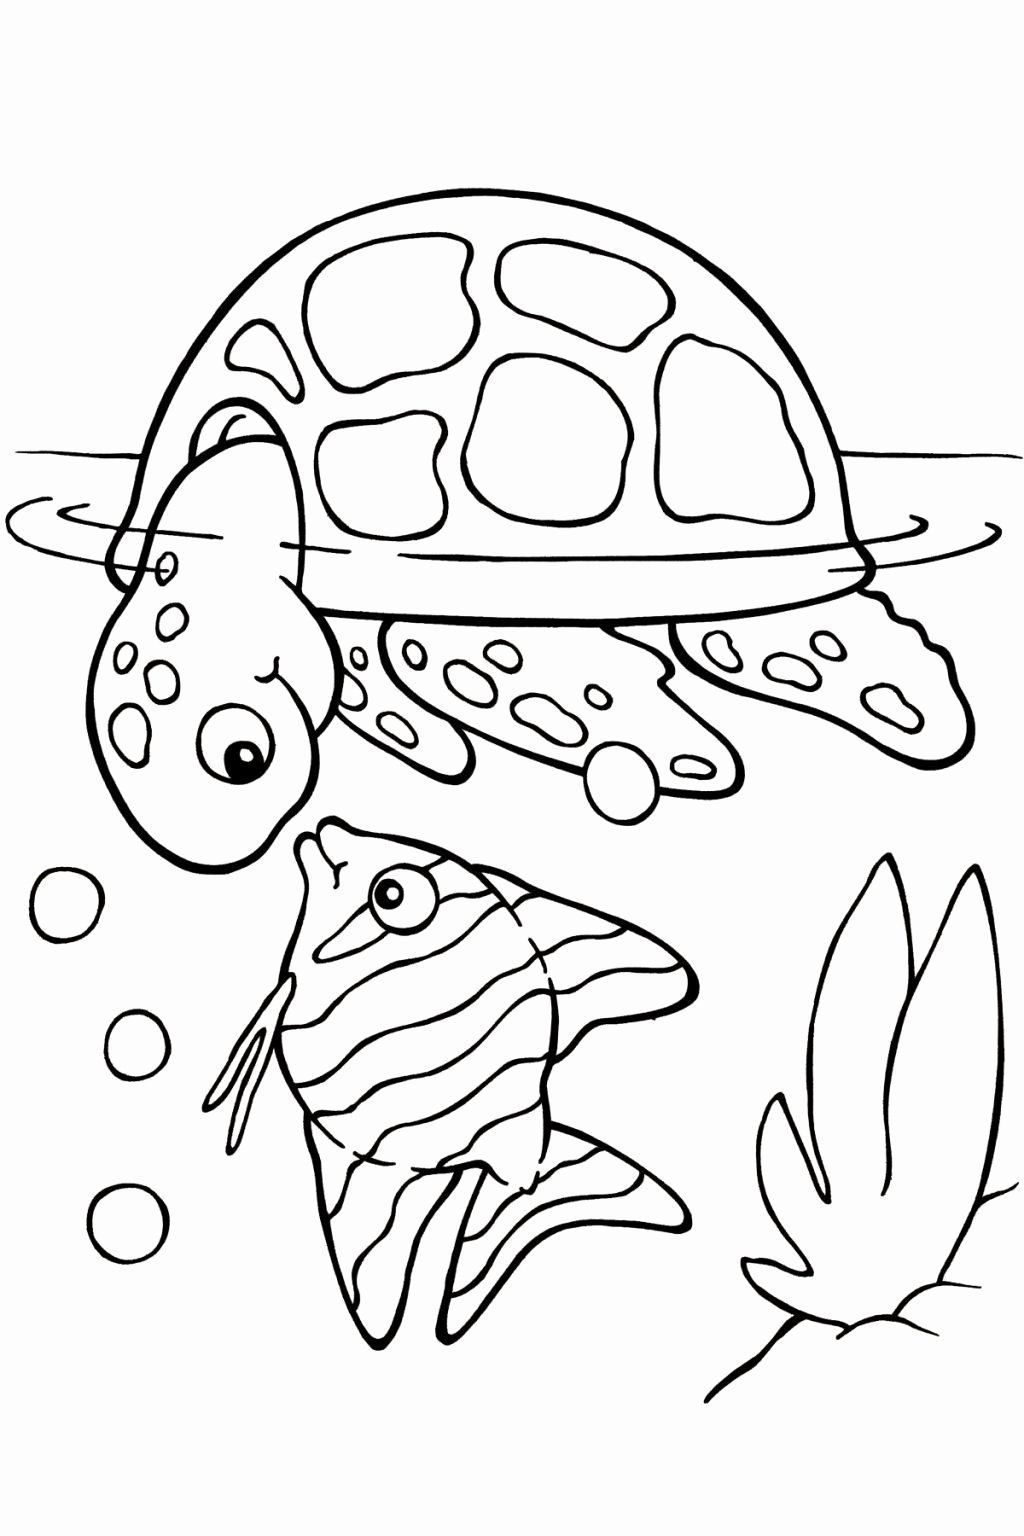 Dolphin And Turtle Coloring Pages - PeepsBurgh